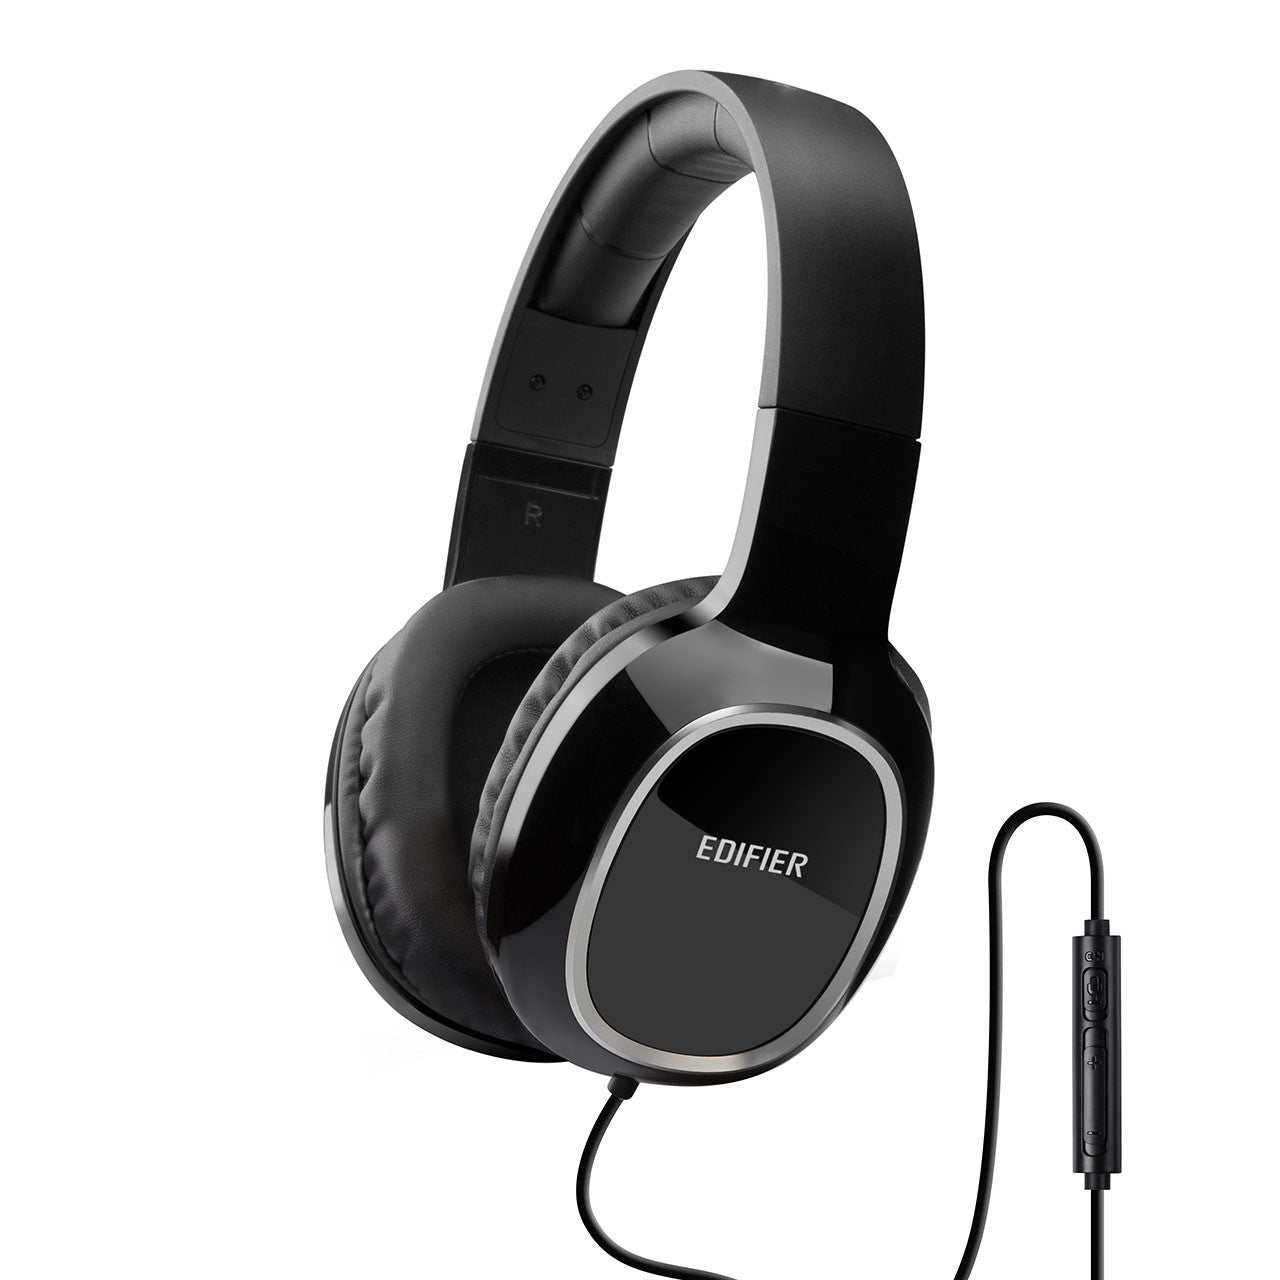 Edifier M815 Over-the-ear Headphones with Mic and Volume Control